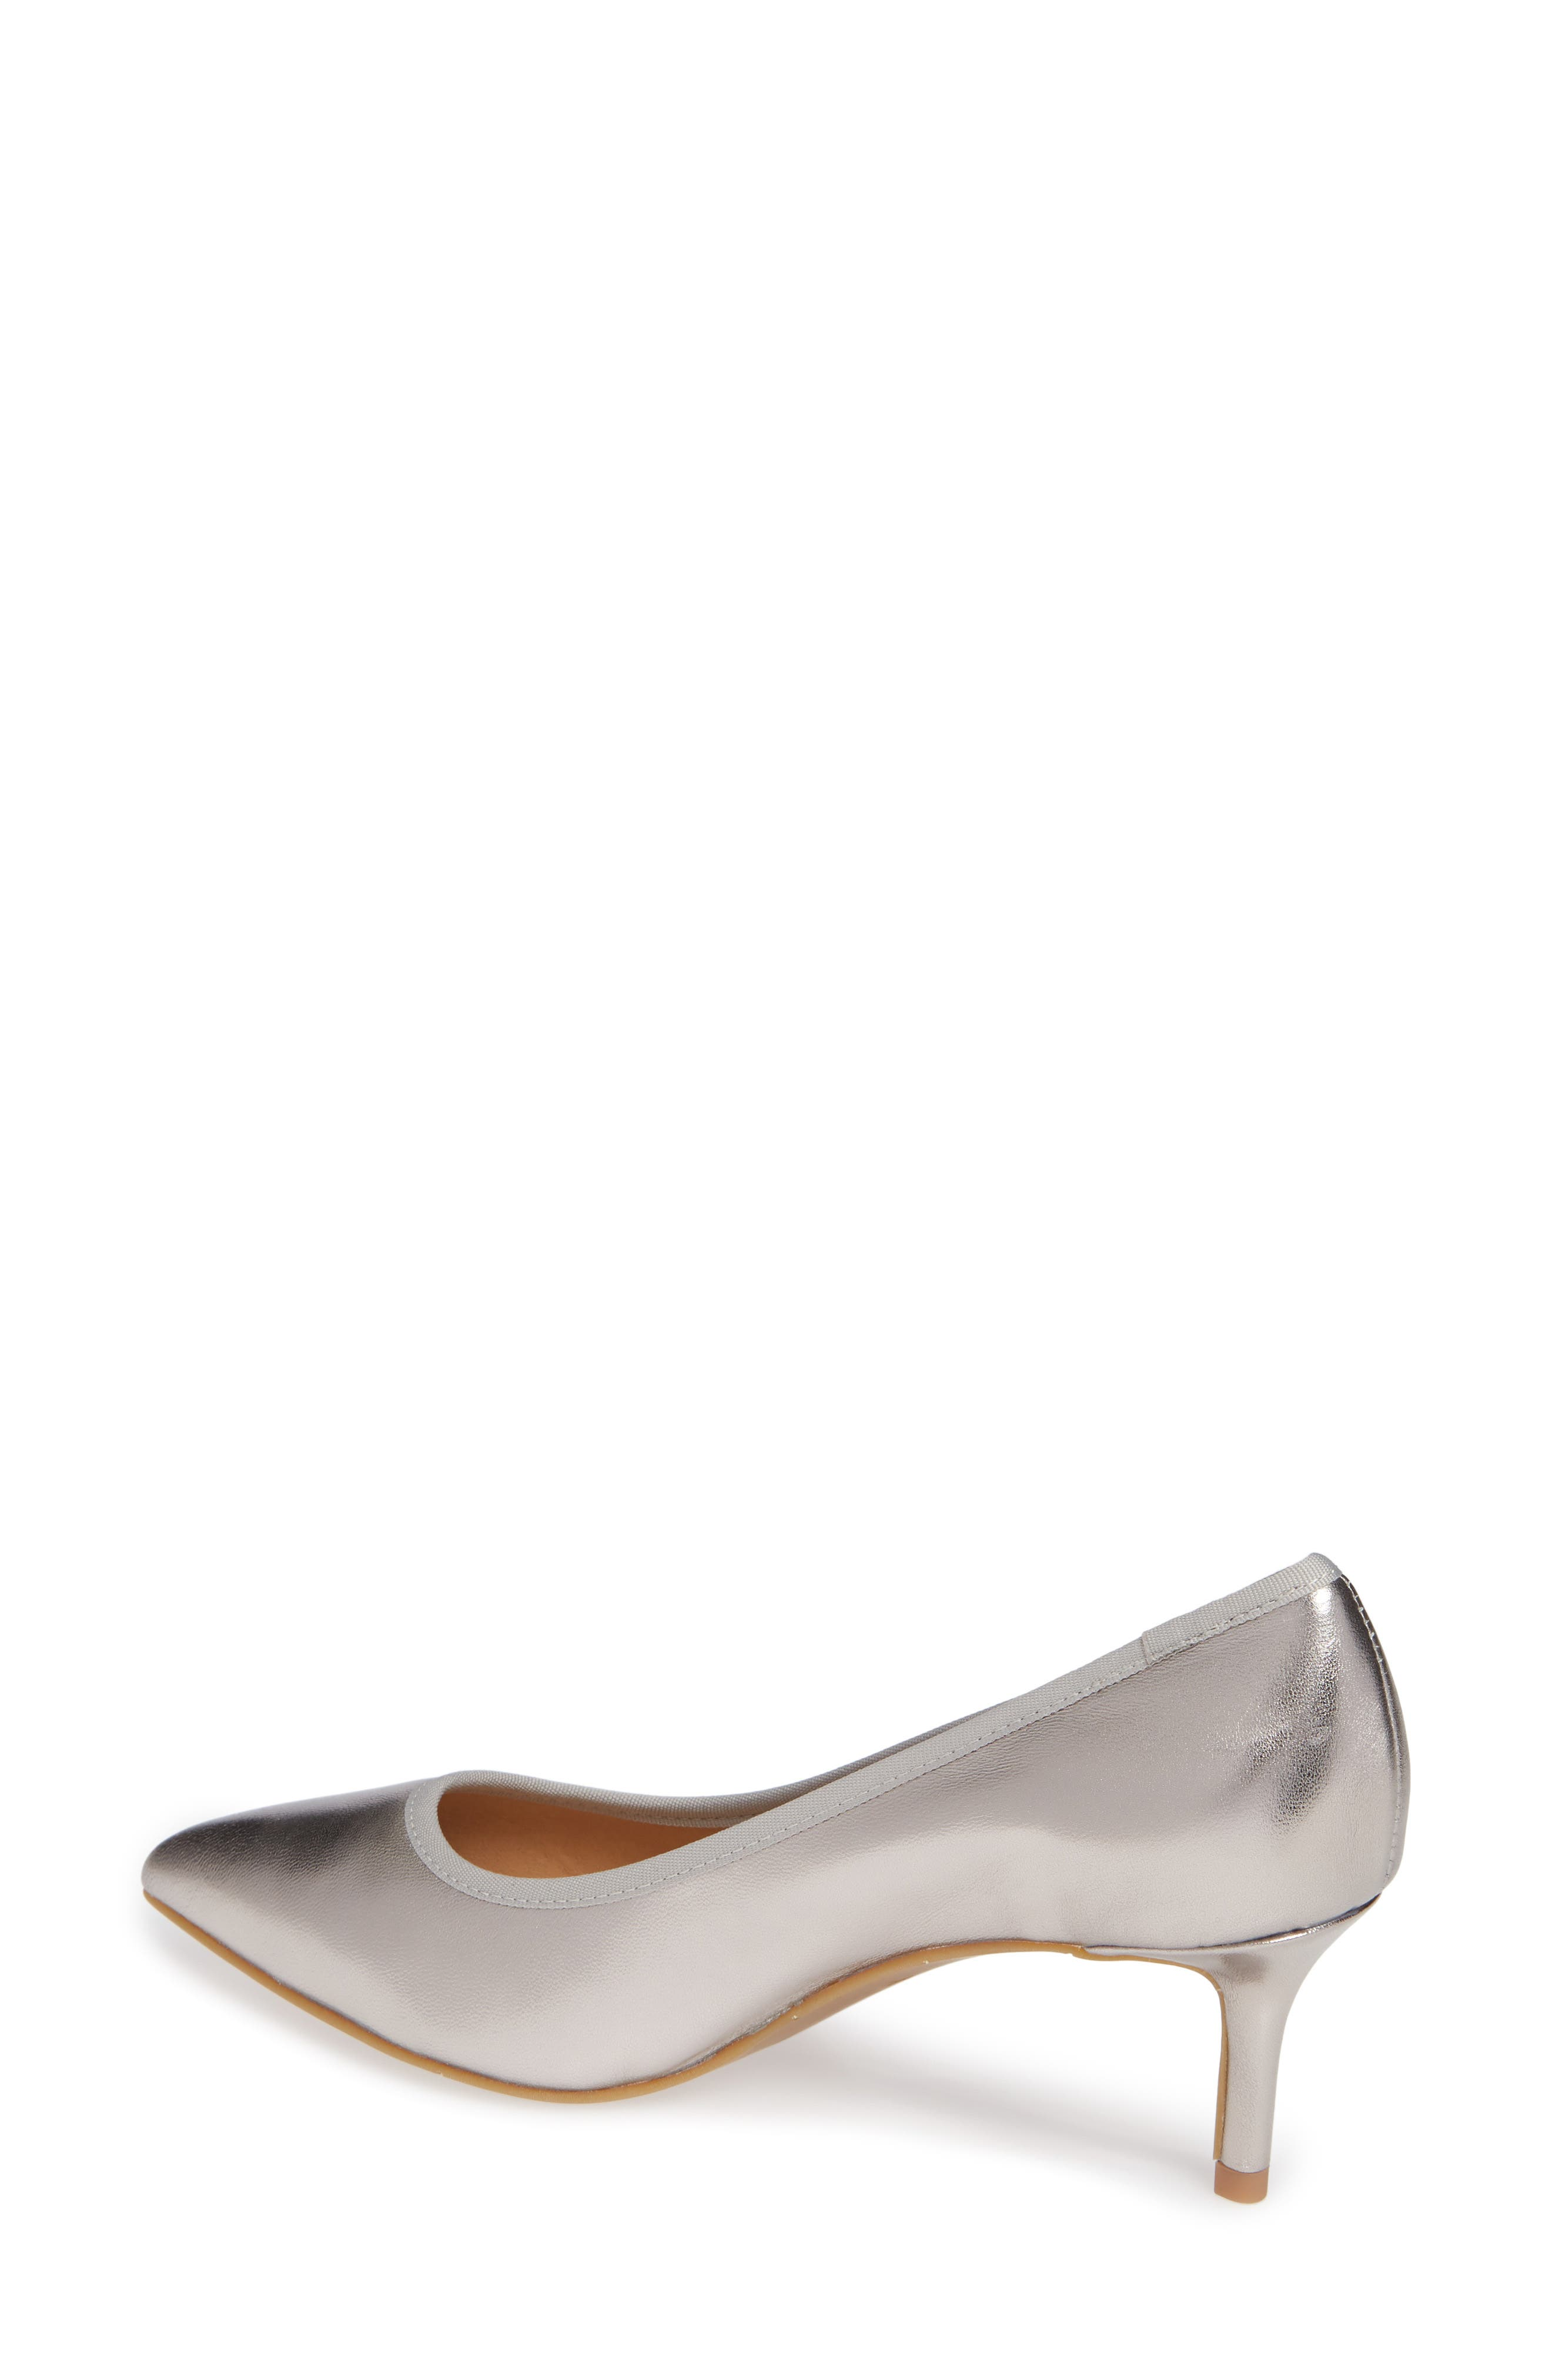 NIC + ZOE Cora Pointy Toe Pump,                             Alternate thumbnail 2, color,                             PEWTER LEATHER